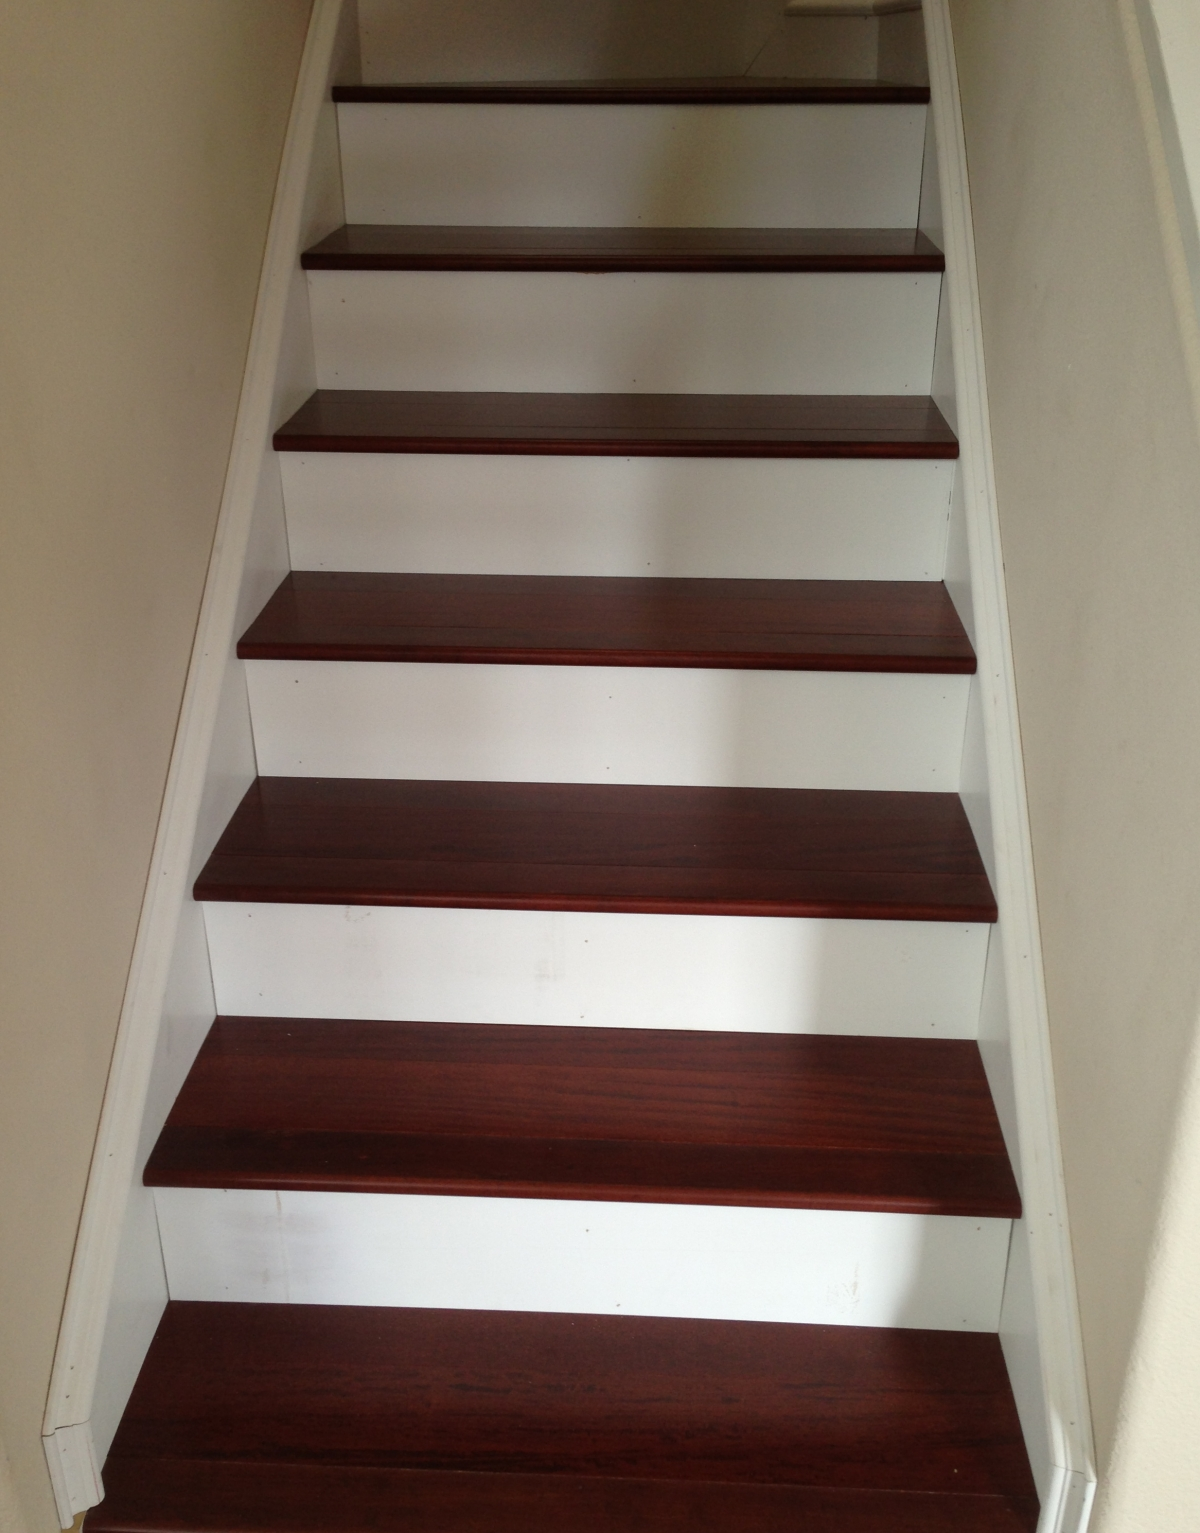 Engineered Wood Stairs With White Paneling Riser